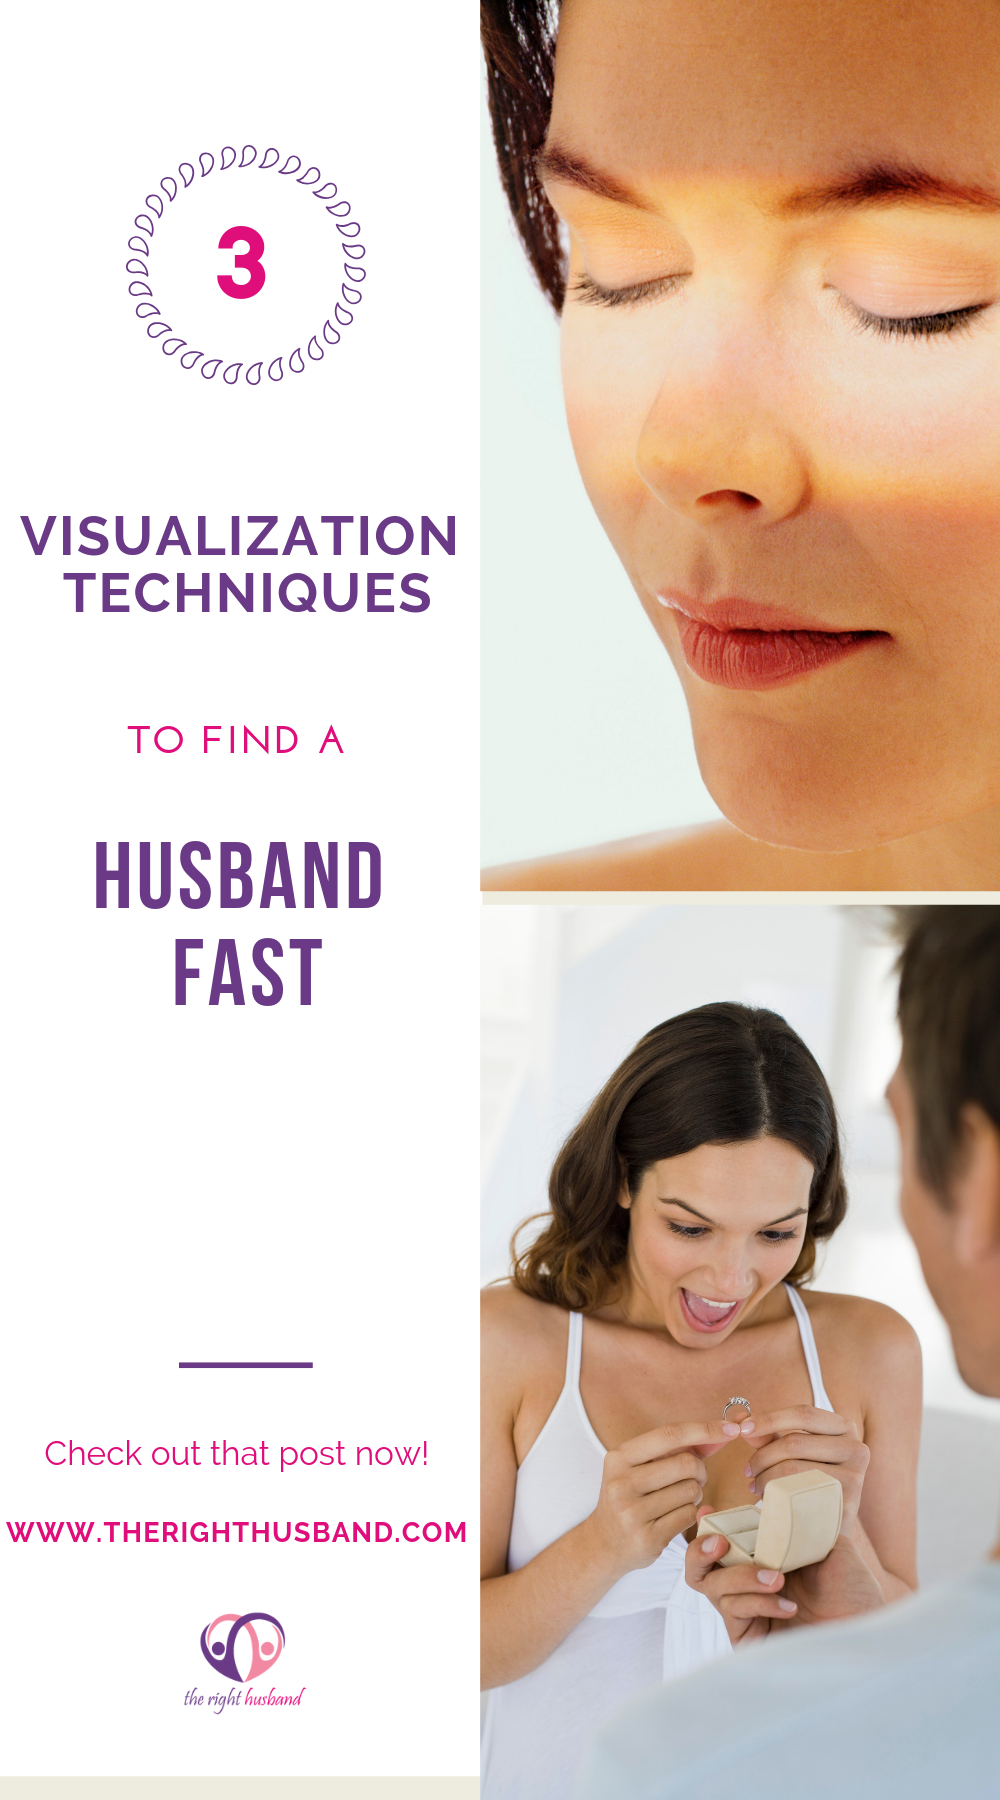 1000x1800 3 easy visualization techniques to find a husband fast 1